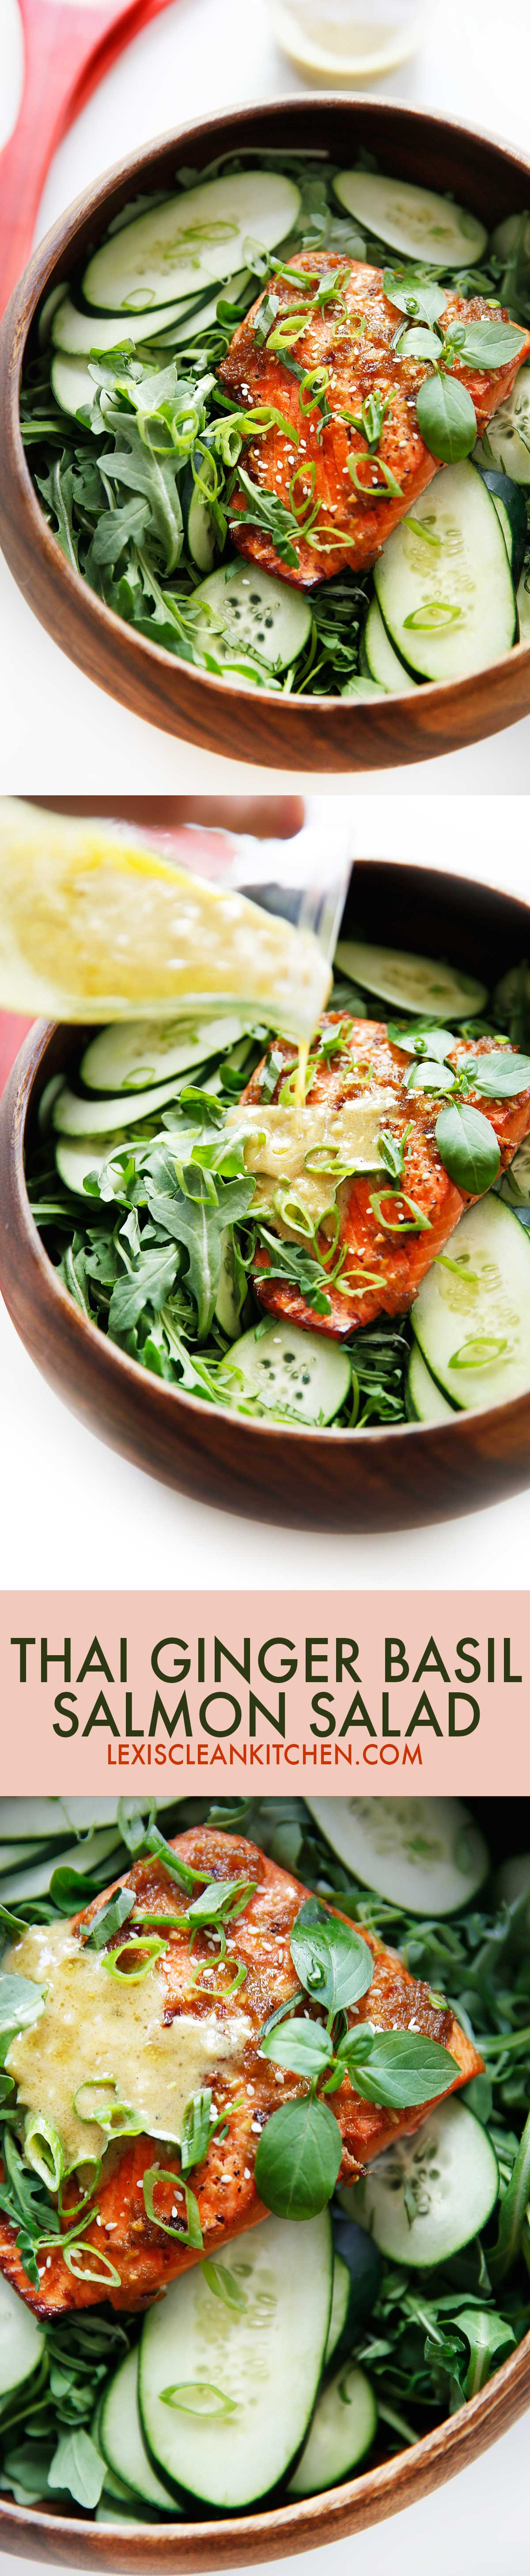 Thai Ginger Basil Salmon Salad {Whole30 compliant, dairy-free, paleo, grain-free} | Lexi's Clean Kitchen